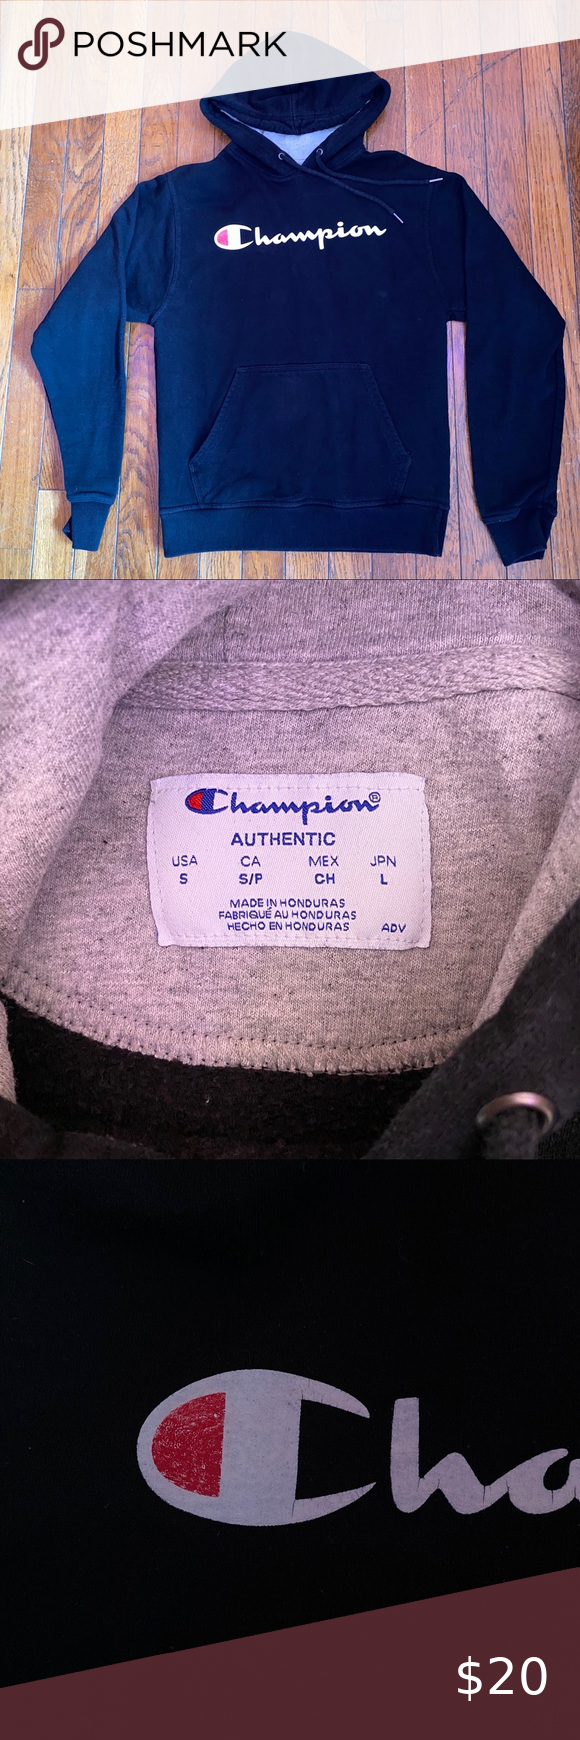 Black champion hoodie Basic black champion hoodie with logo across chest, men's size small, GUC logo is cracking otherwise in good condition. Fits a women's small-medium Champion Shirts